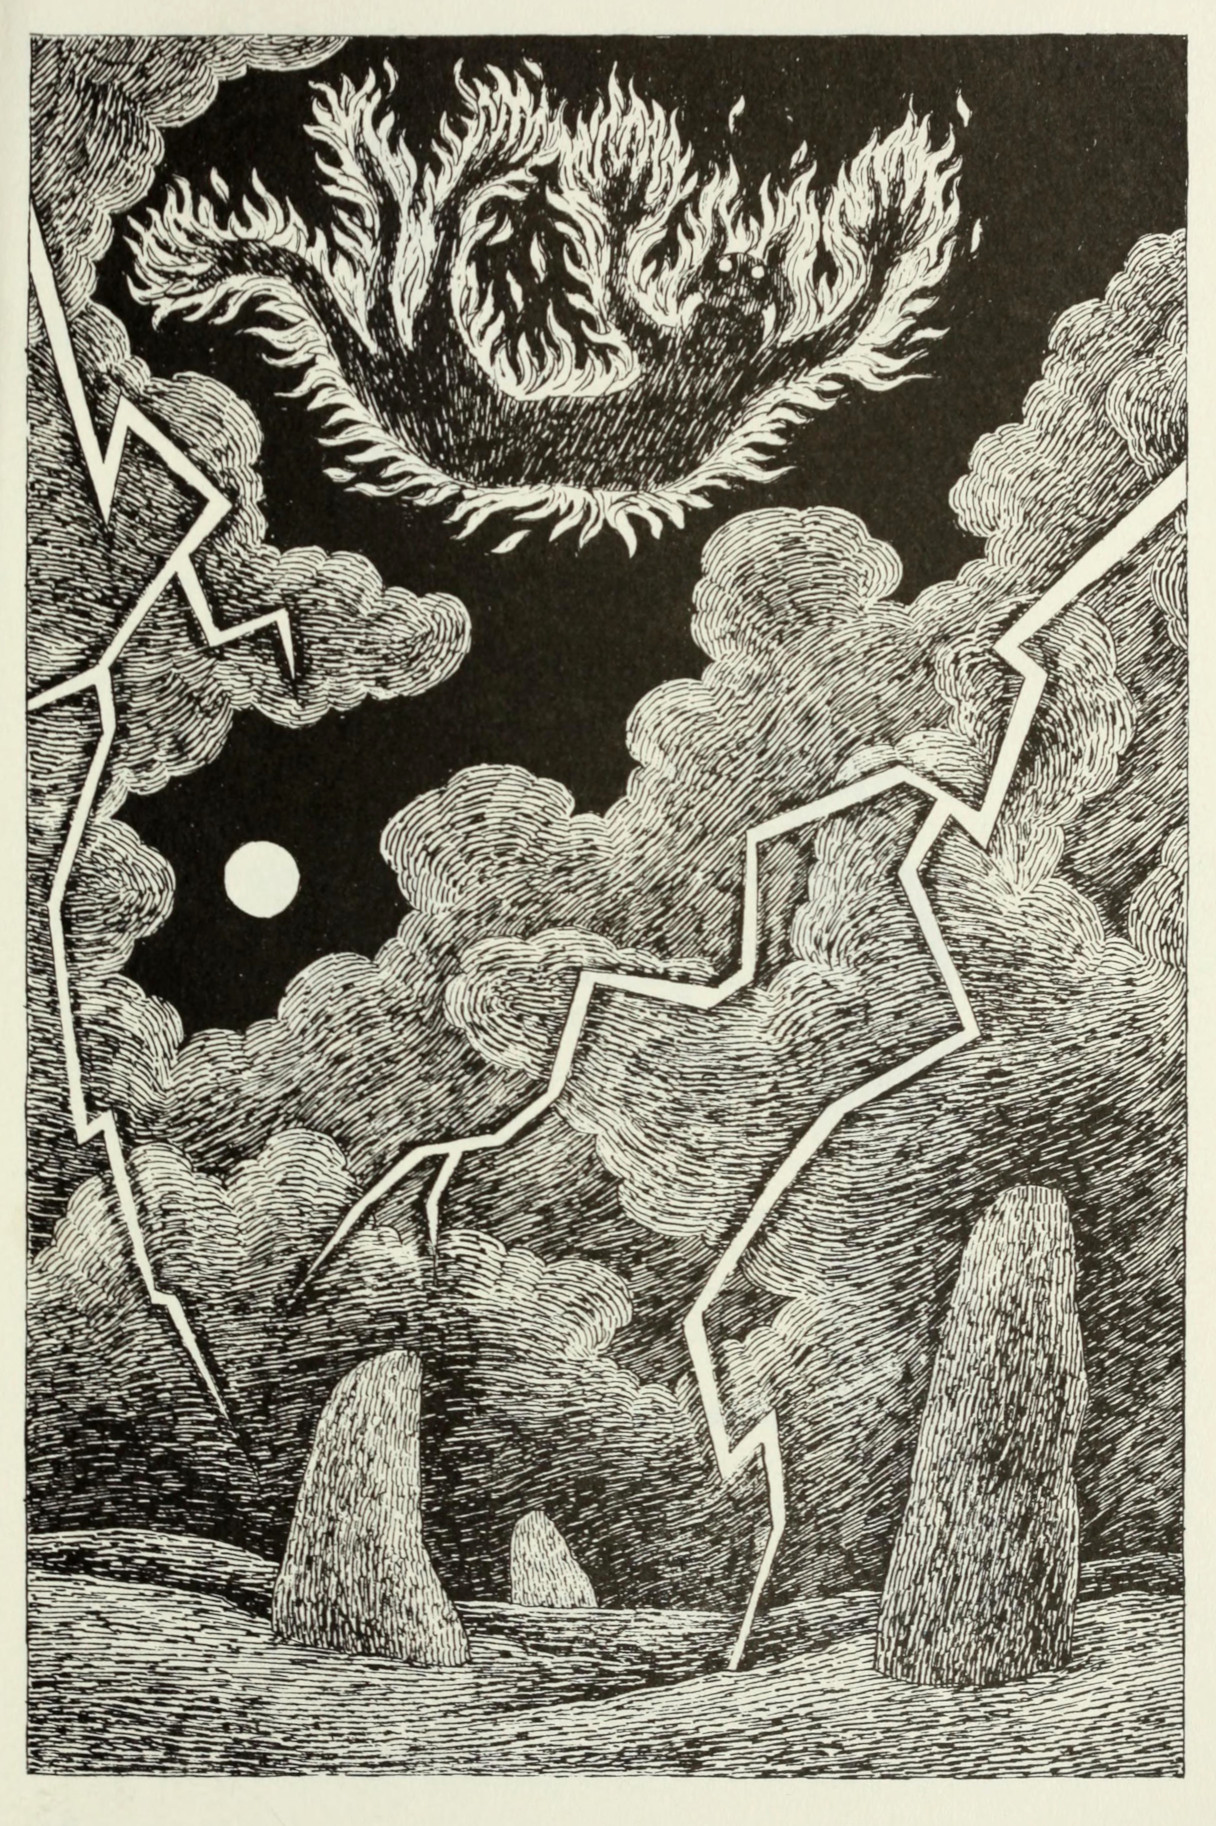 Fireforefiddle, the Fiend of the Fell by Edward Gorey (1982)